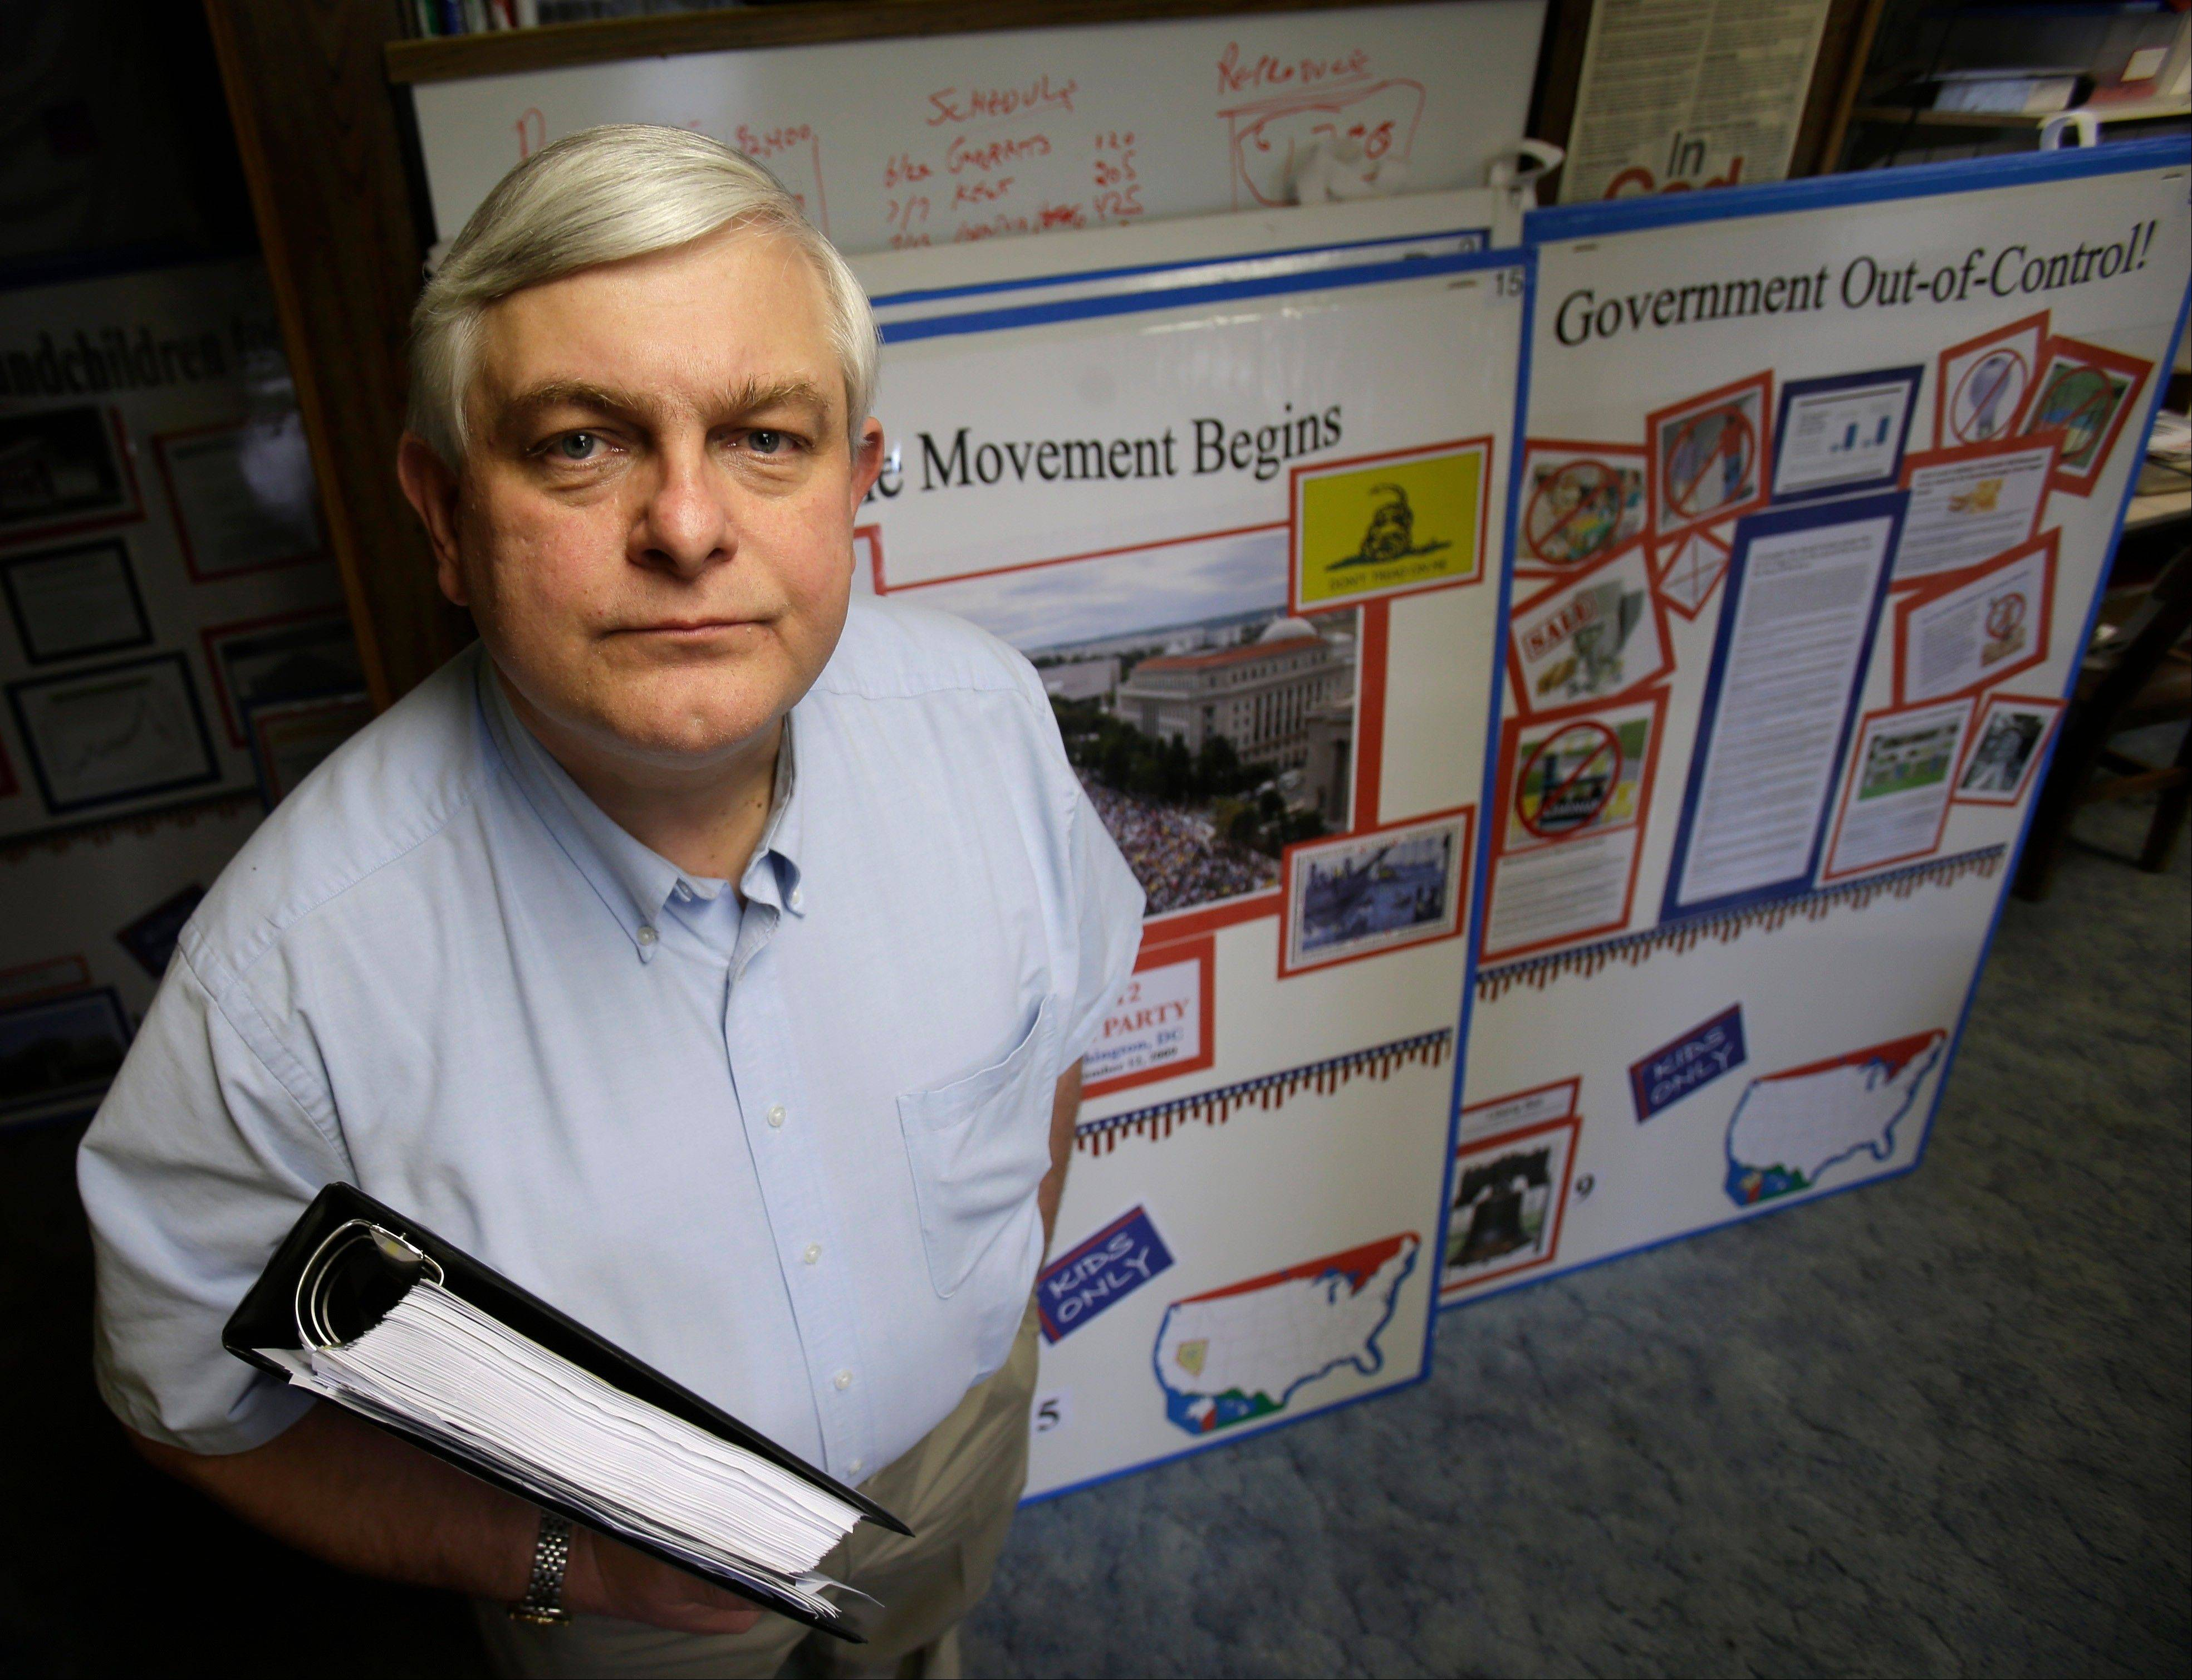 Tom Zawistowki, founder of the nonprofit Ohio Liberty Coalition, one of the region's largest groups affiliated with the national tea party movement, poses with a binder of documents he gave to the IRS, in Kent, Ohio.